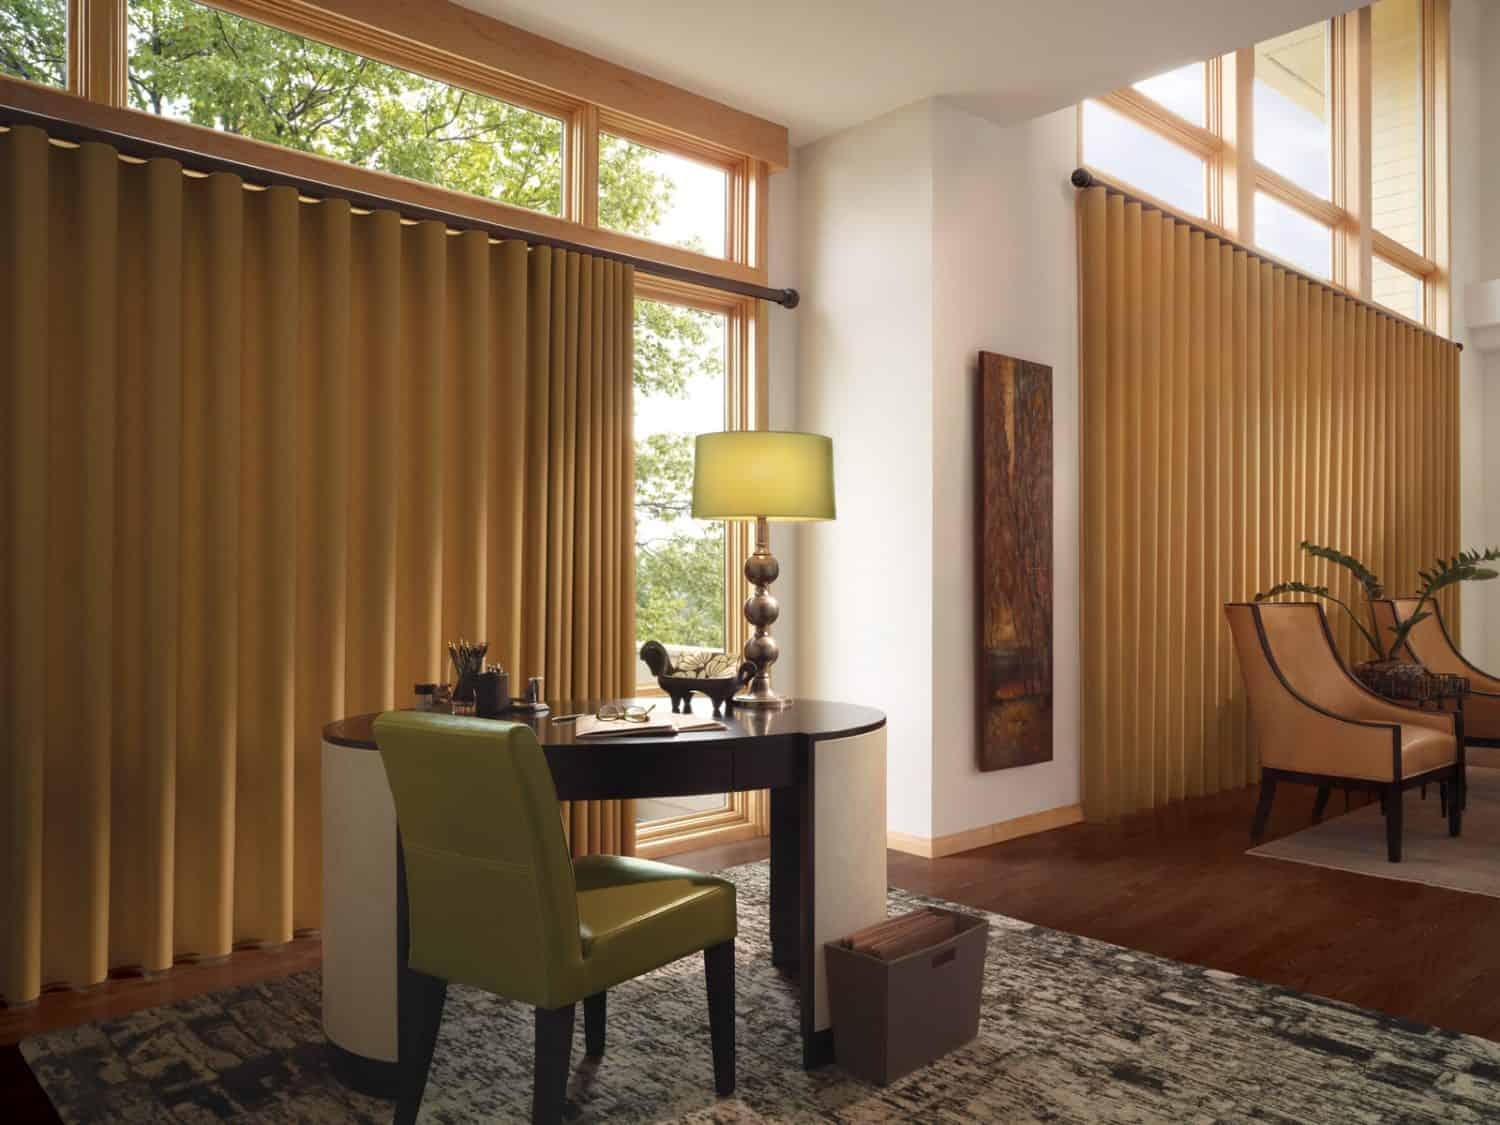 patio track curtains blinds fabric of panel tracks panels shades vertical sliding doors full size glass for